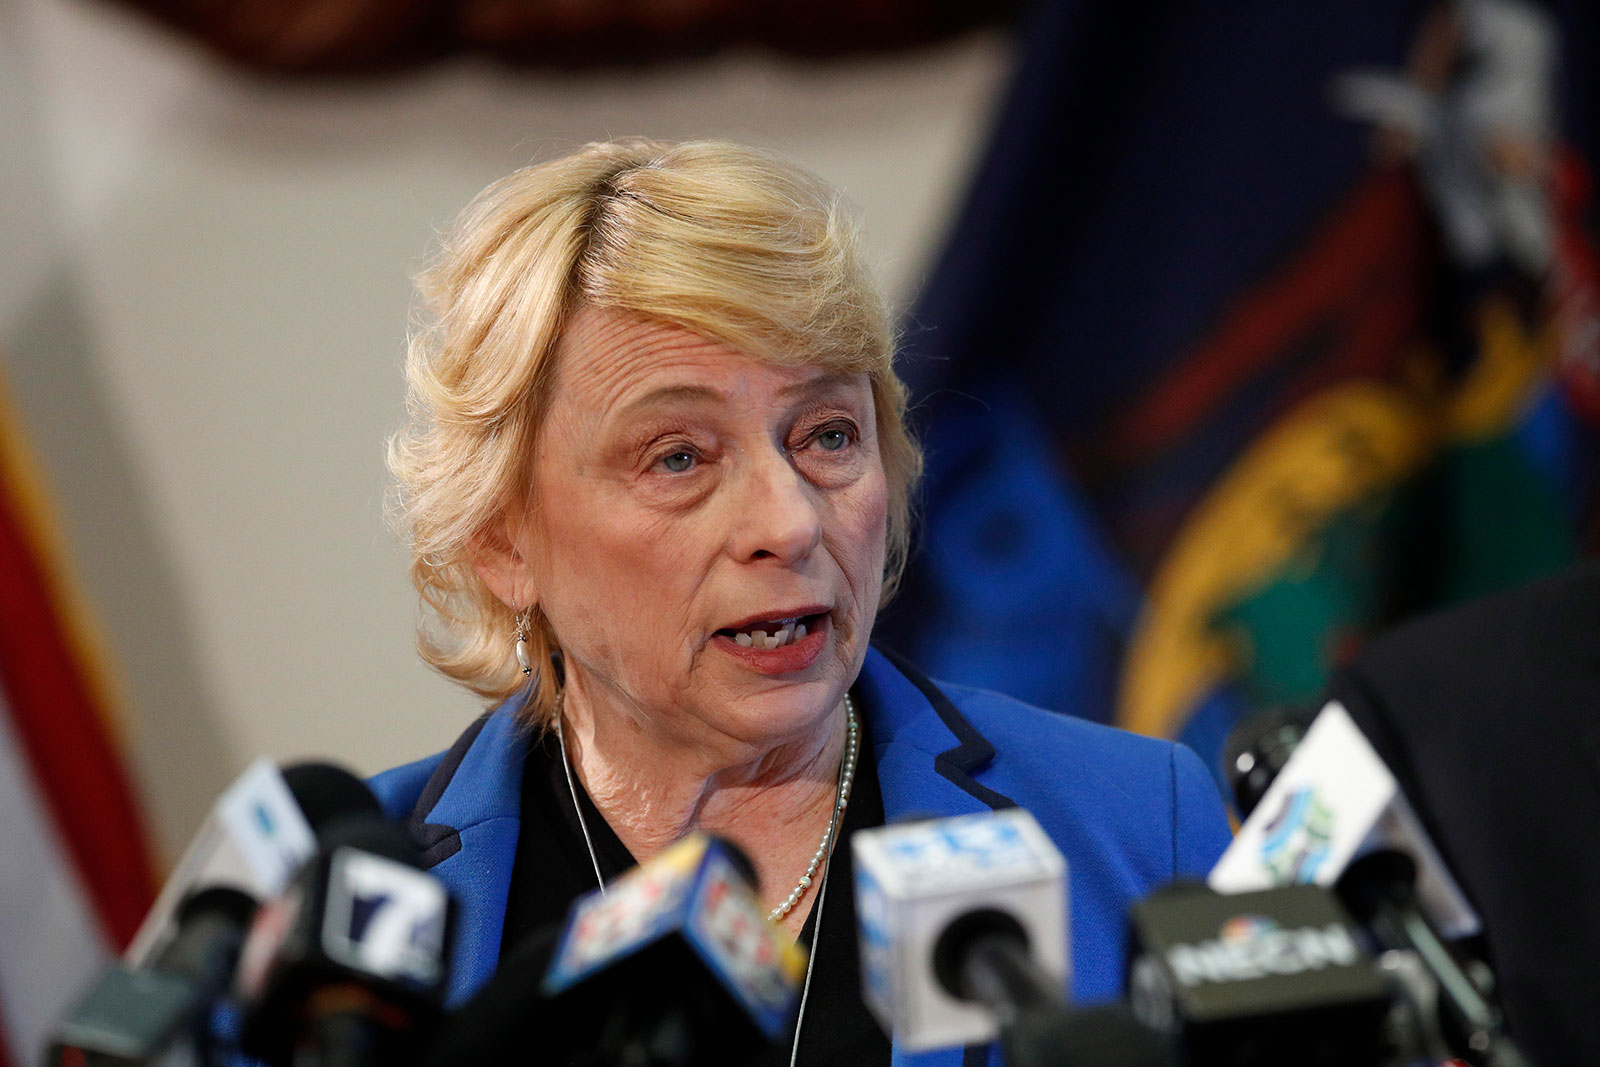 Gov. Janet Mills speaks at a press briefing in Augusta, Maine, on Thursday, March 12.